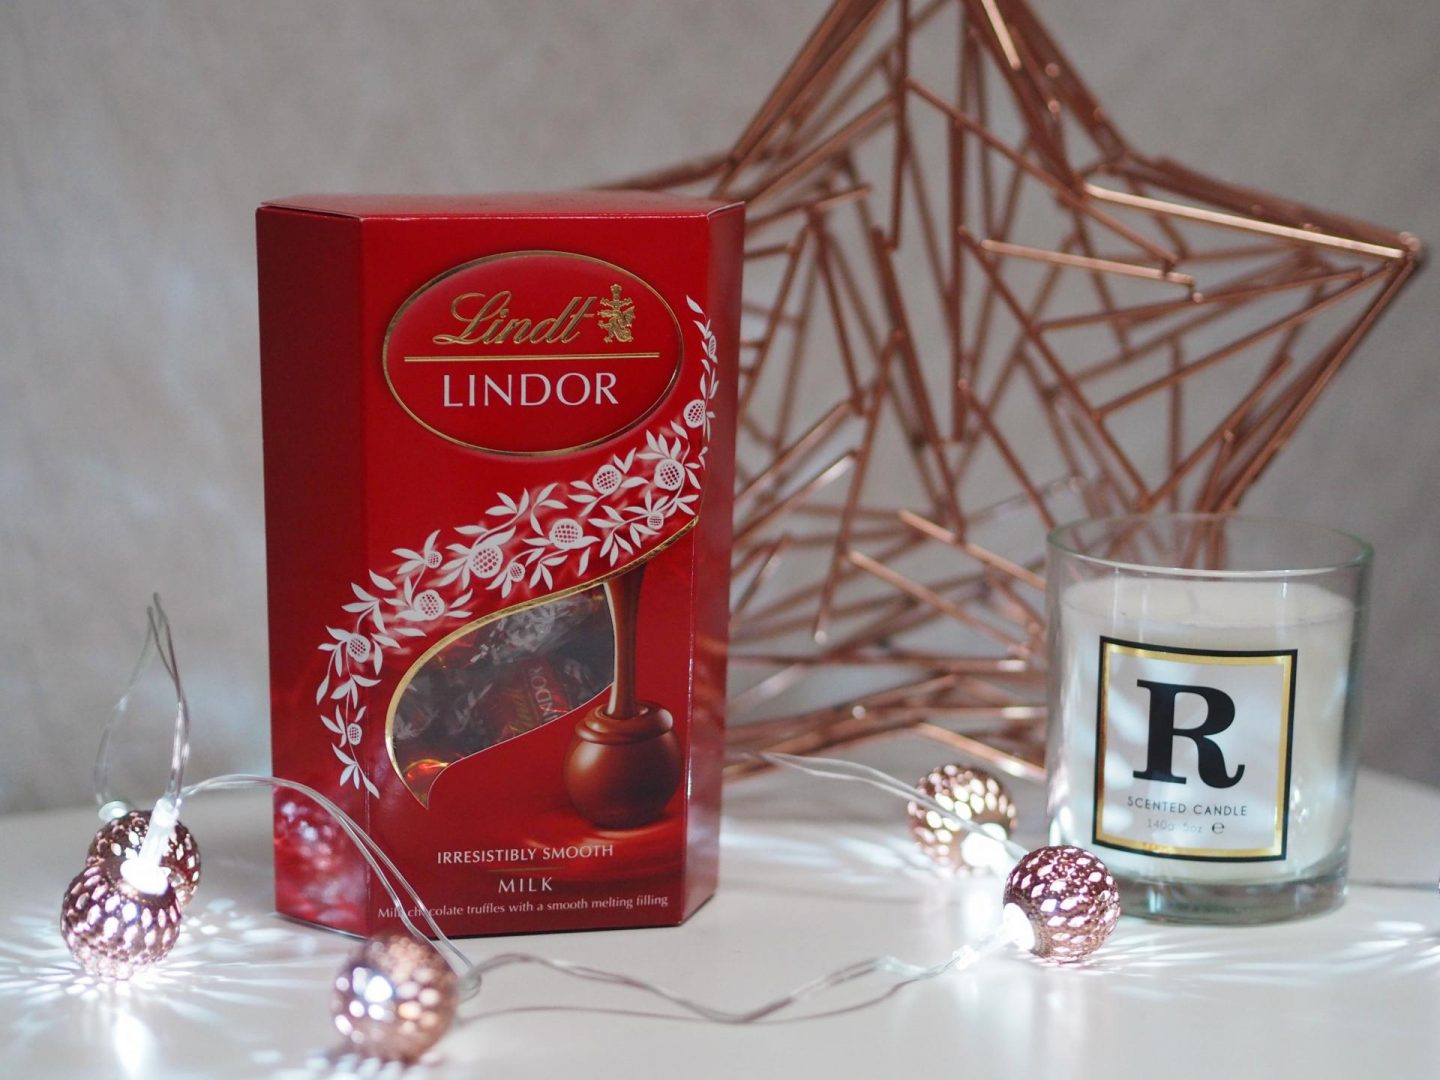 moments-of-bliss-with-lindt-chocolate-rachel-nicole-uk-blogger-1